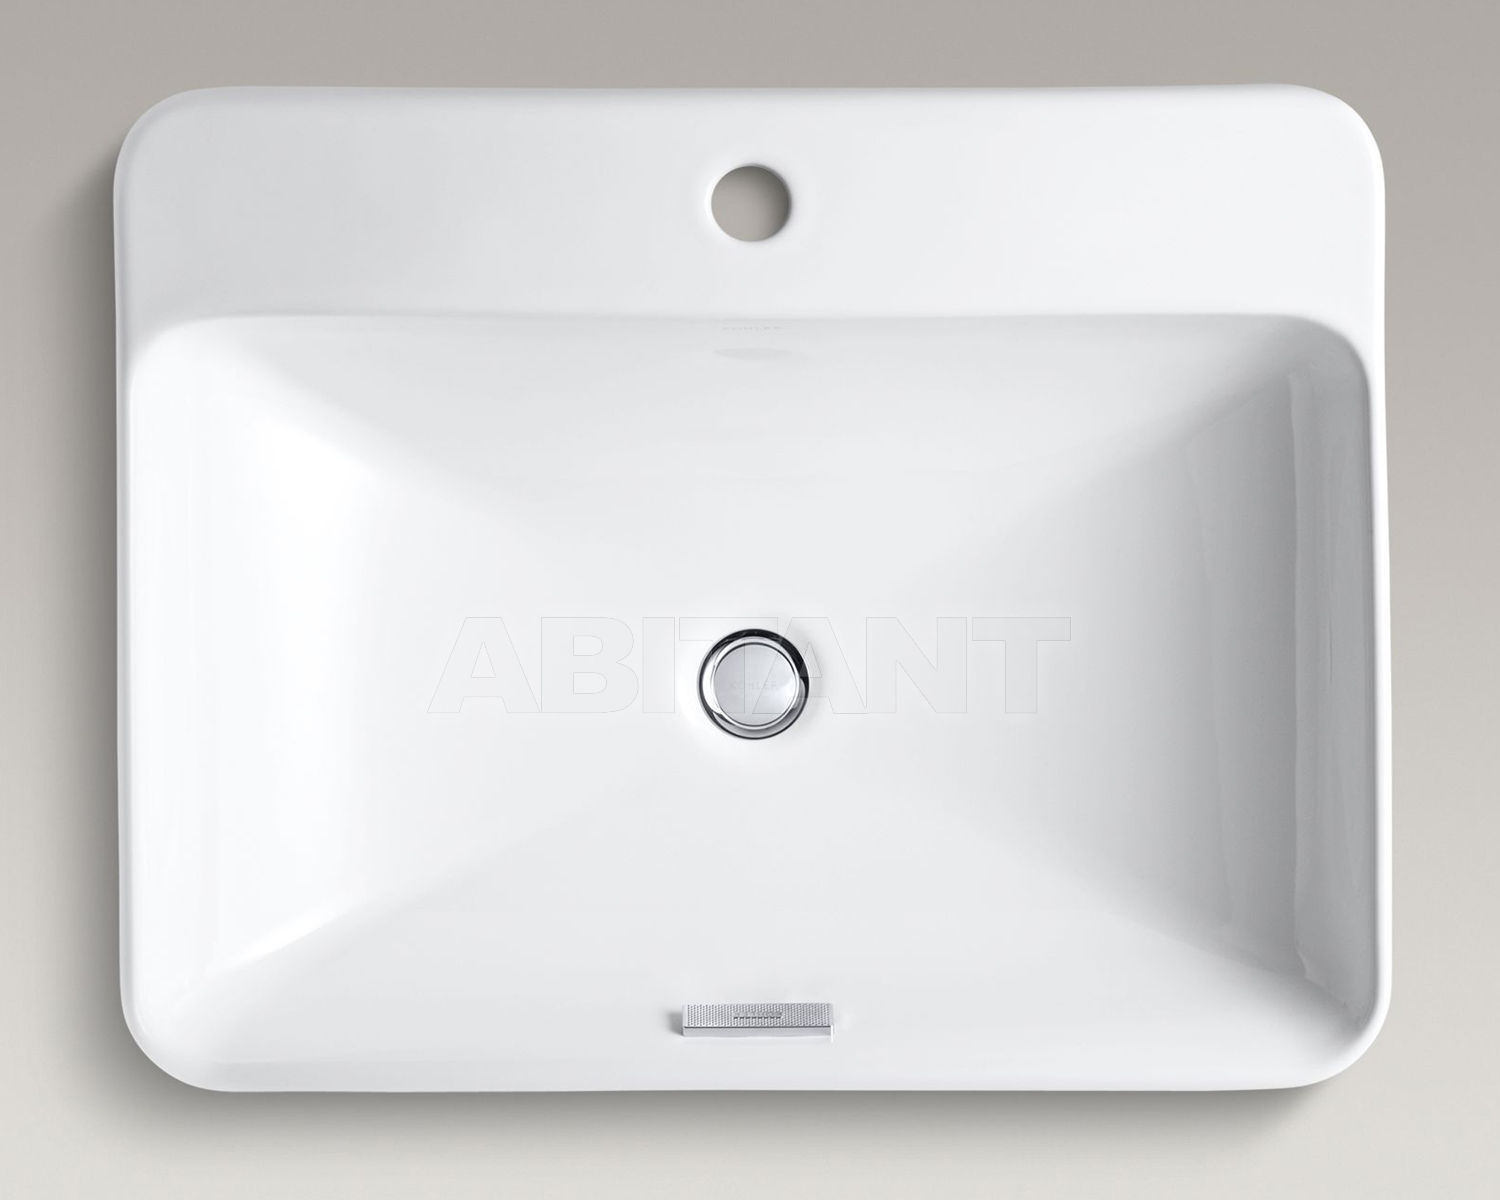 Раковина накладная Vox Rectangle белая Kohler K-2660-1-0 ...